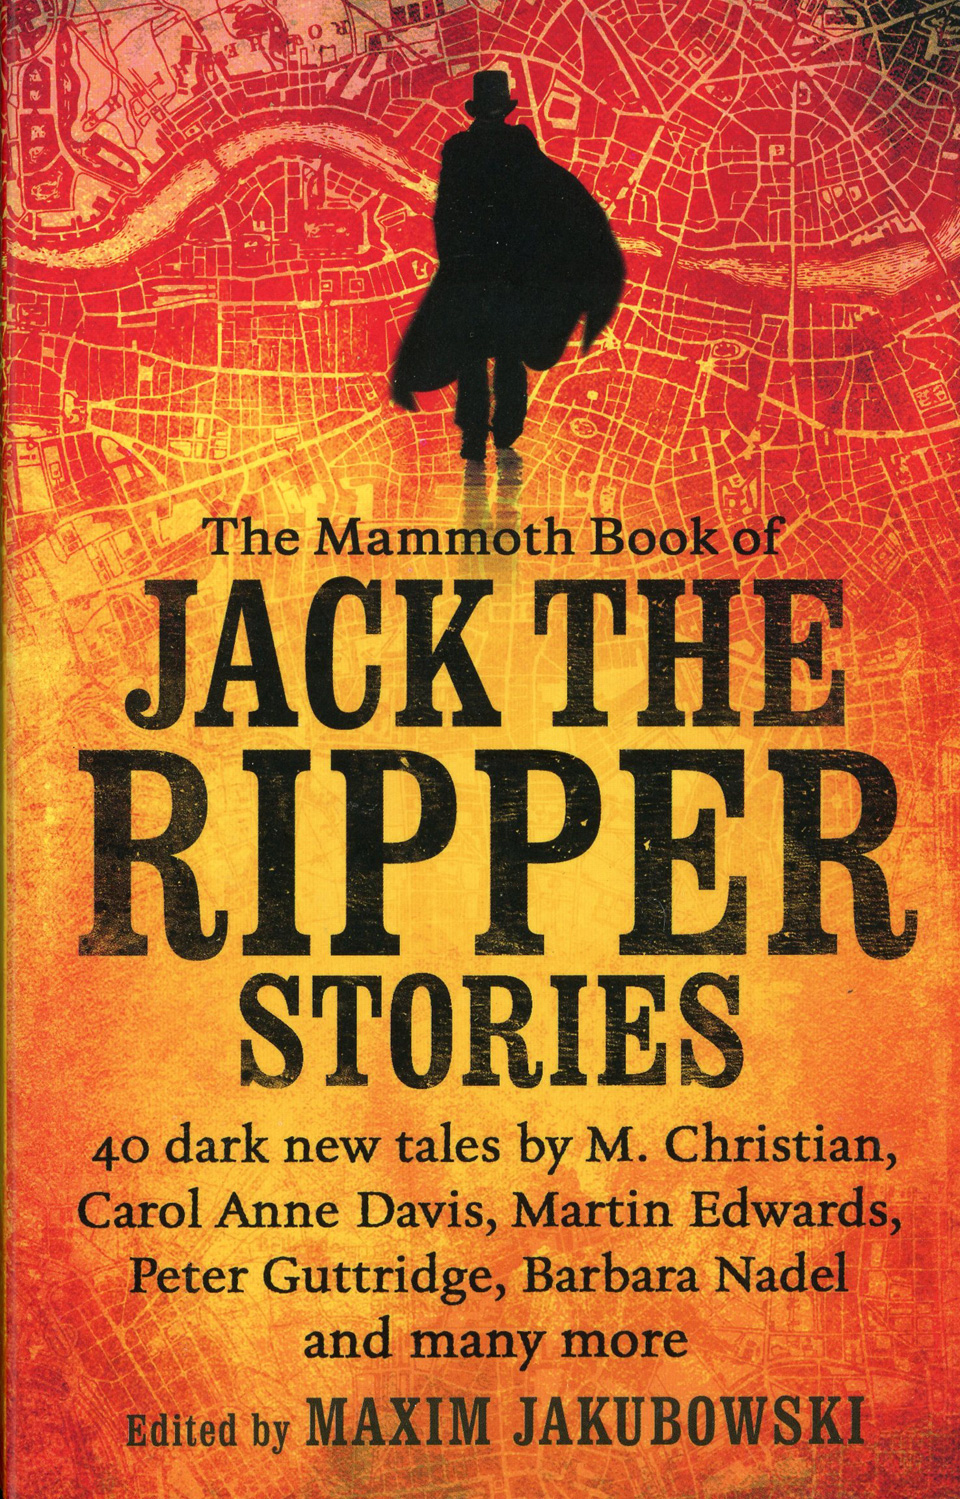 Jack the ripper stories